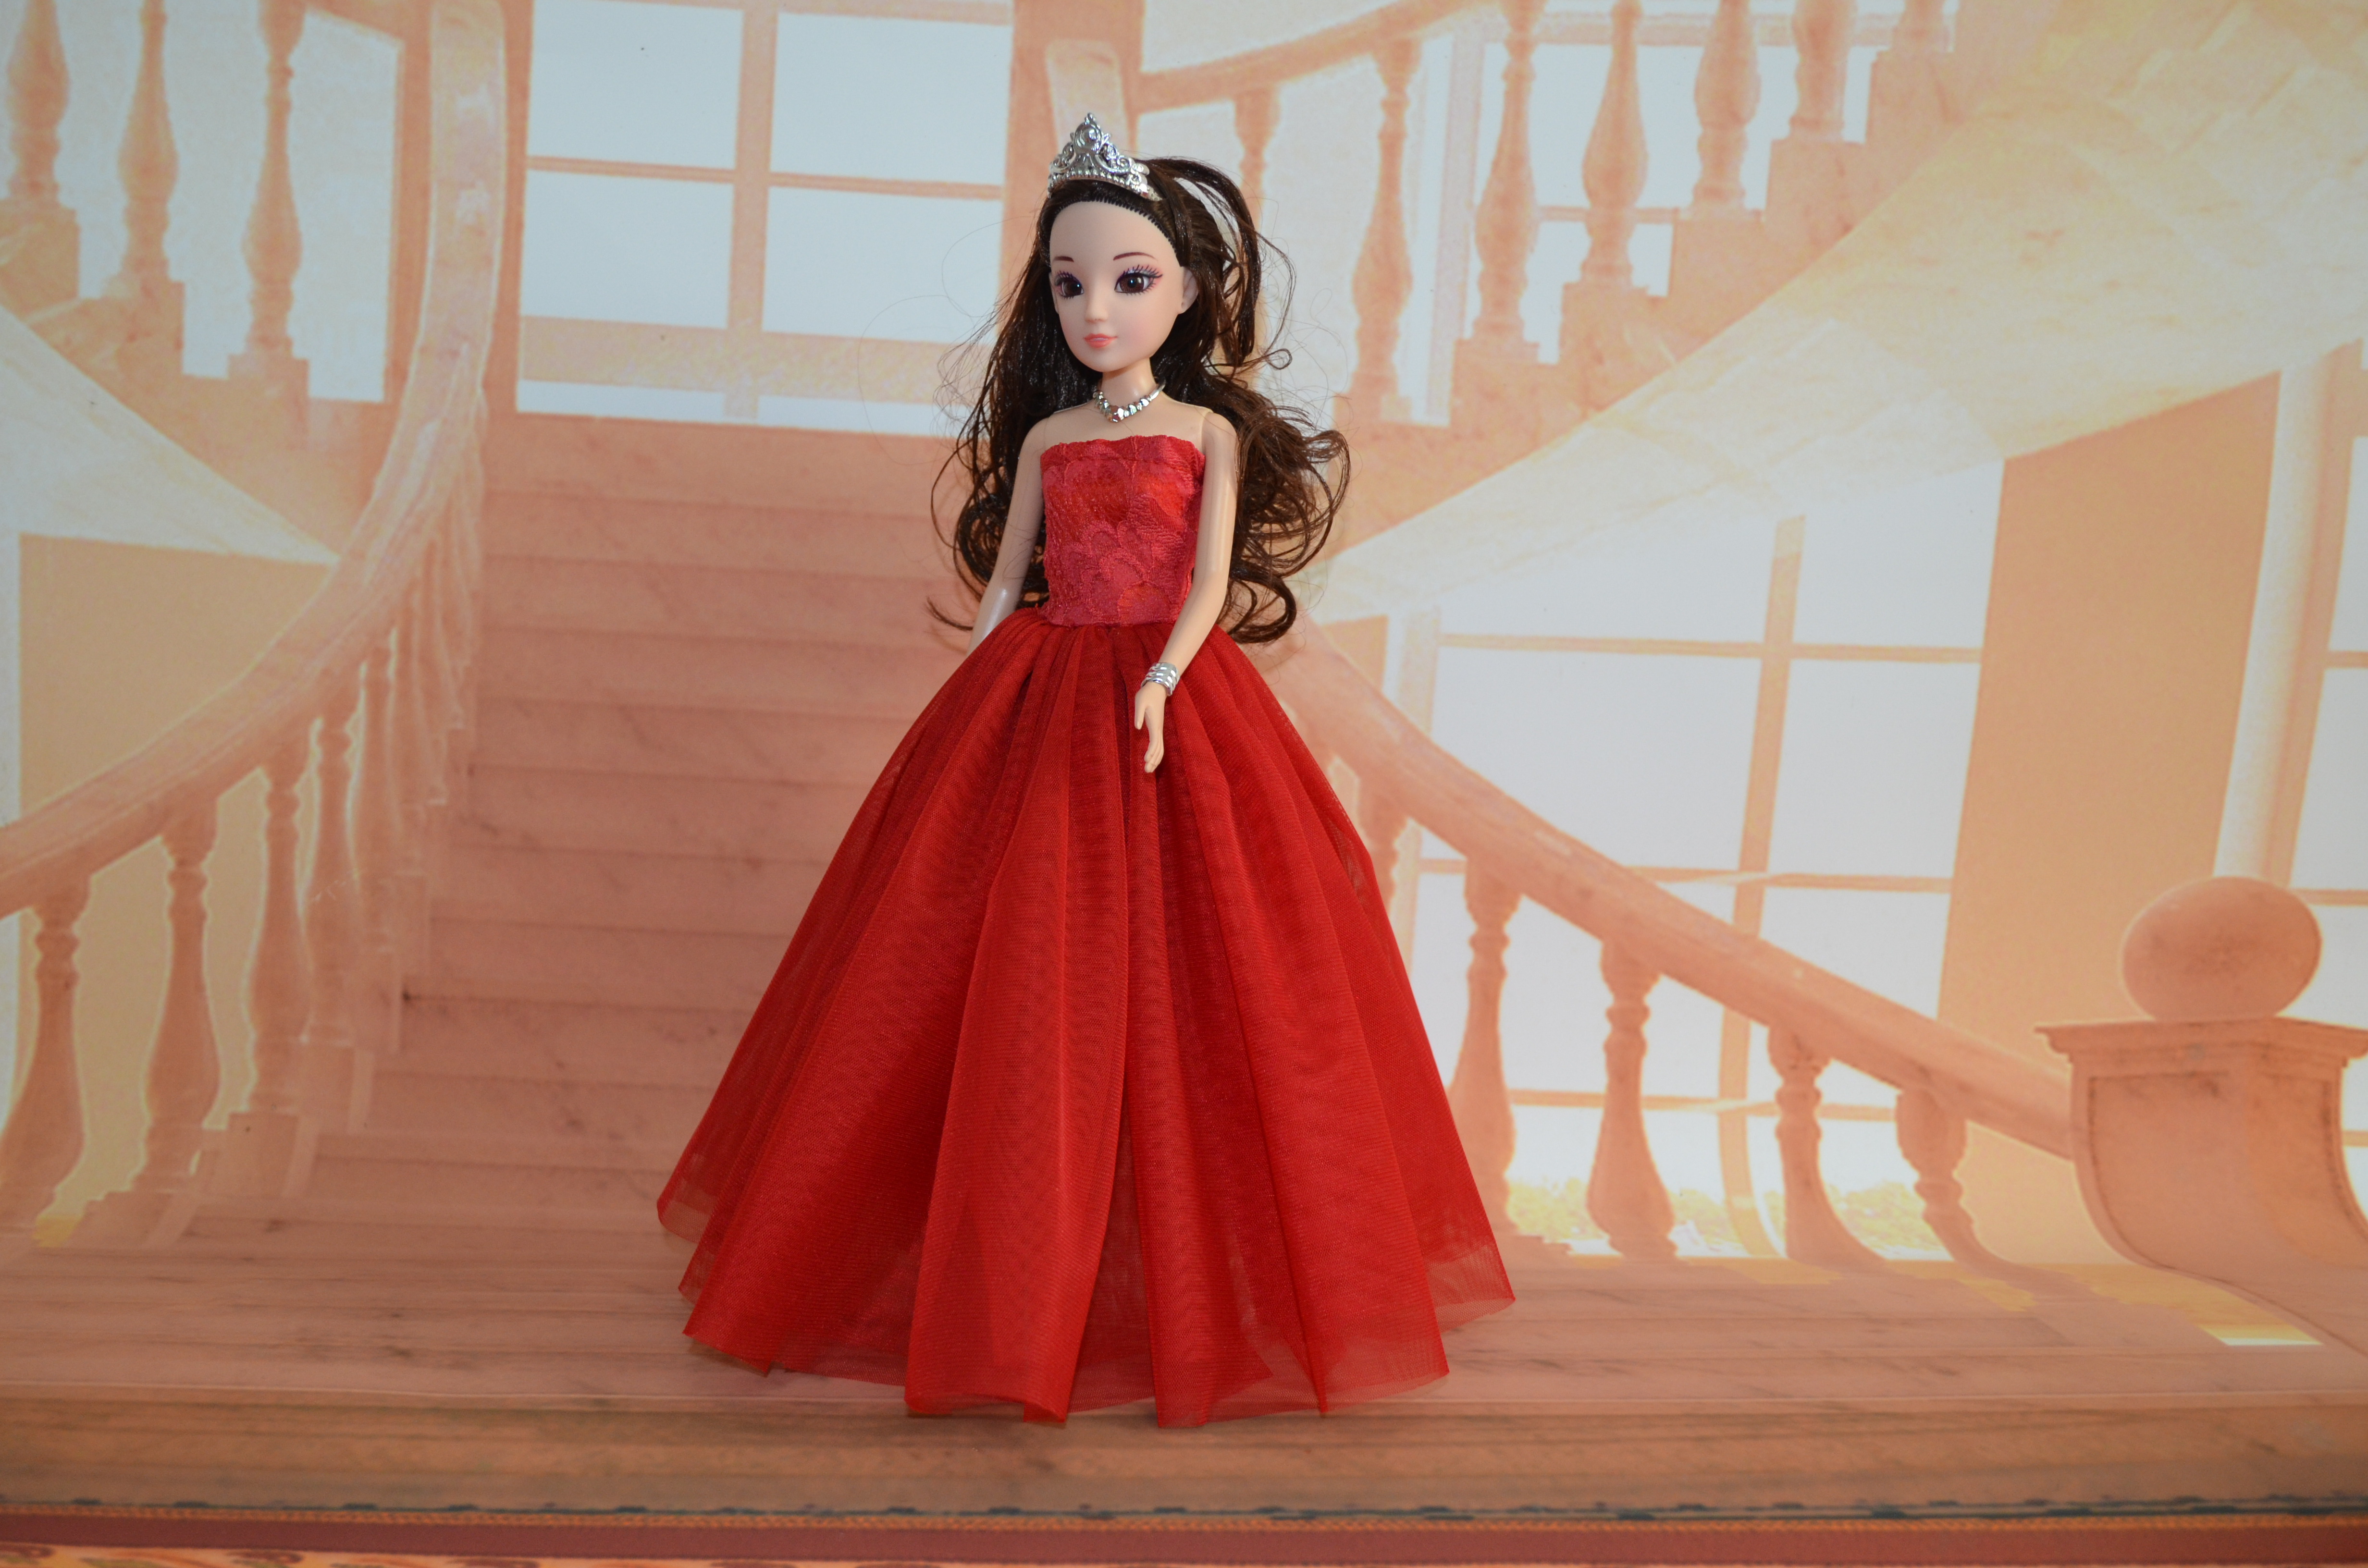 Cheap wedding dress for Barbie doll children princess dress can be a variety of clothing apparel wholesale